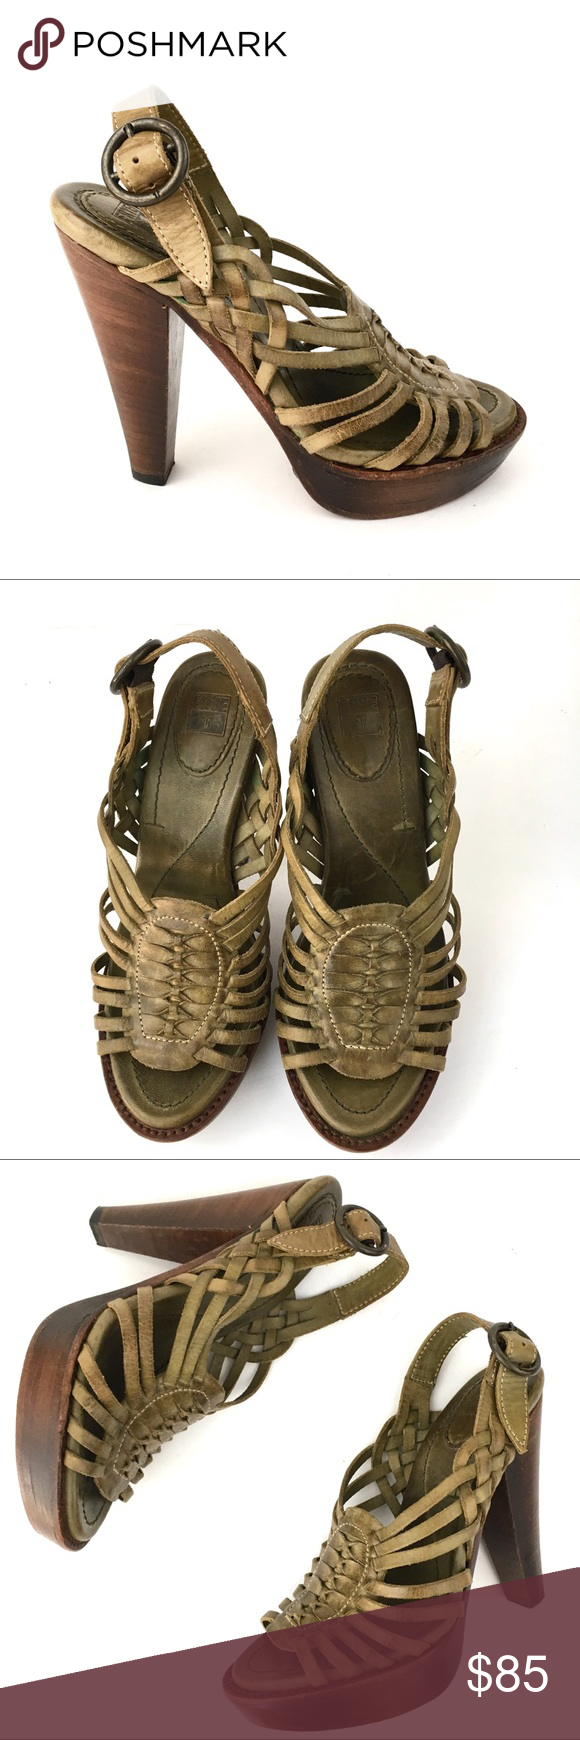 25587c732dce3 Frye green Joy Huarache platform heels sandals 7 Frye olive green leather  Joy Huarache slingback heels